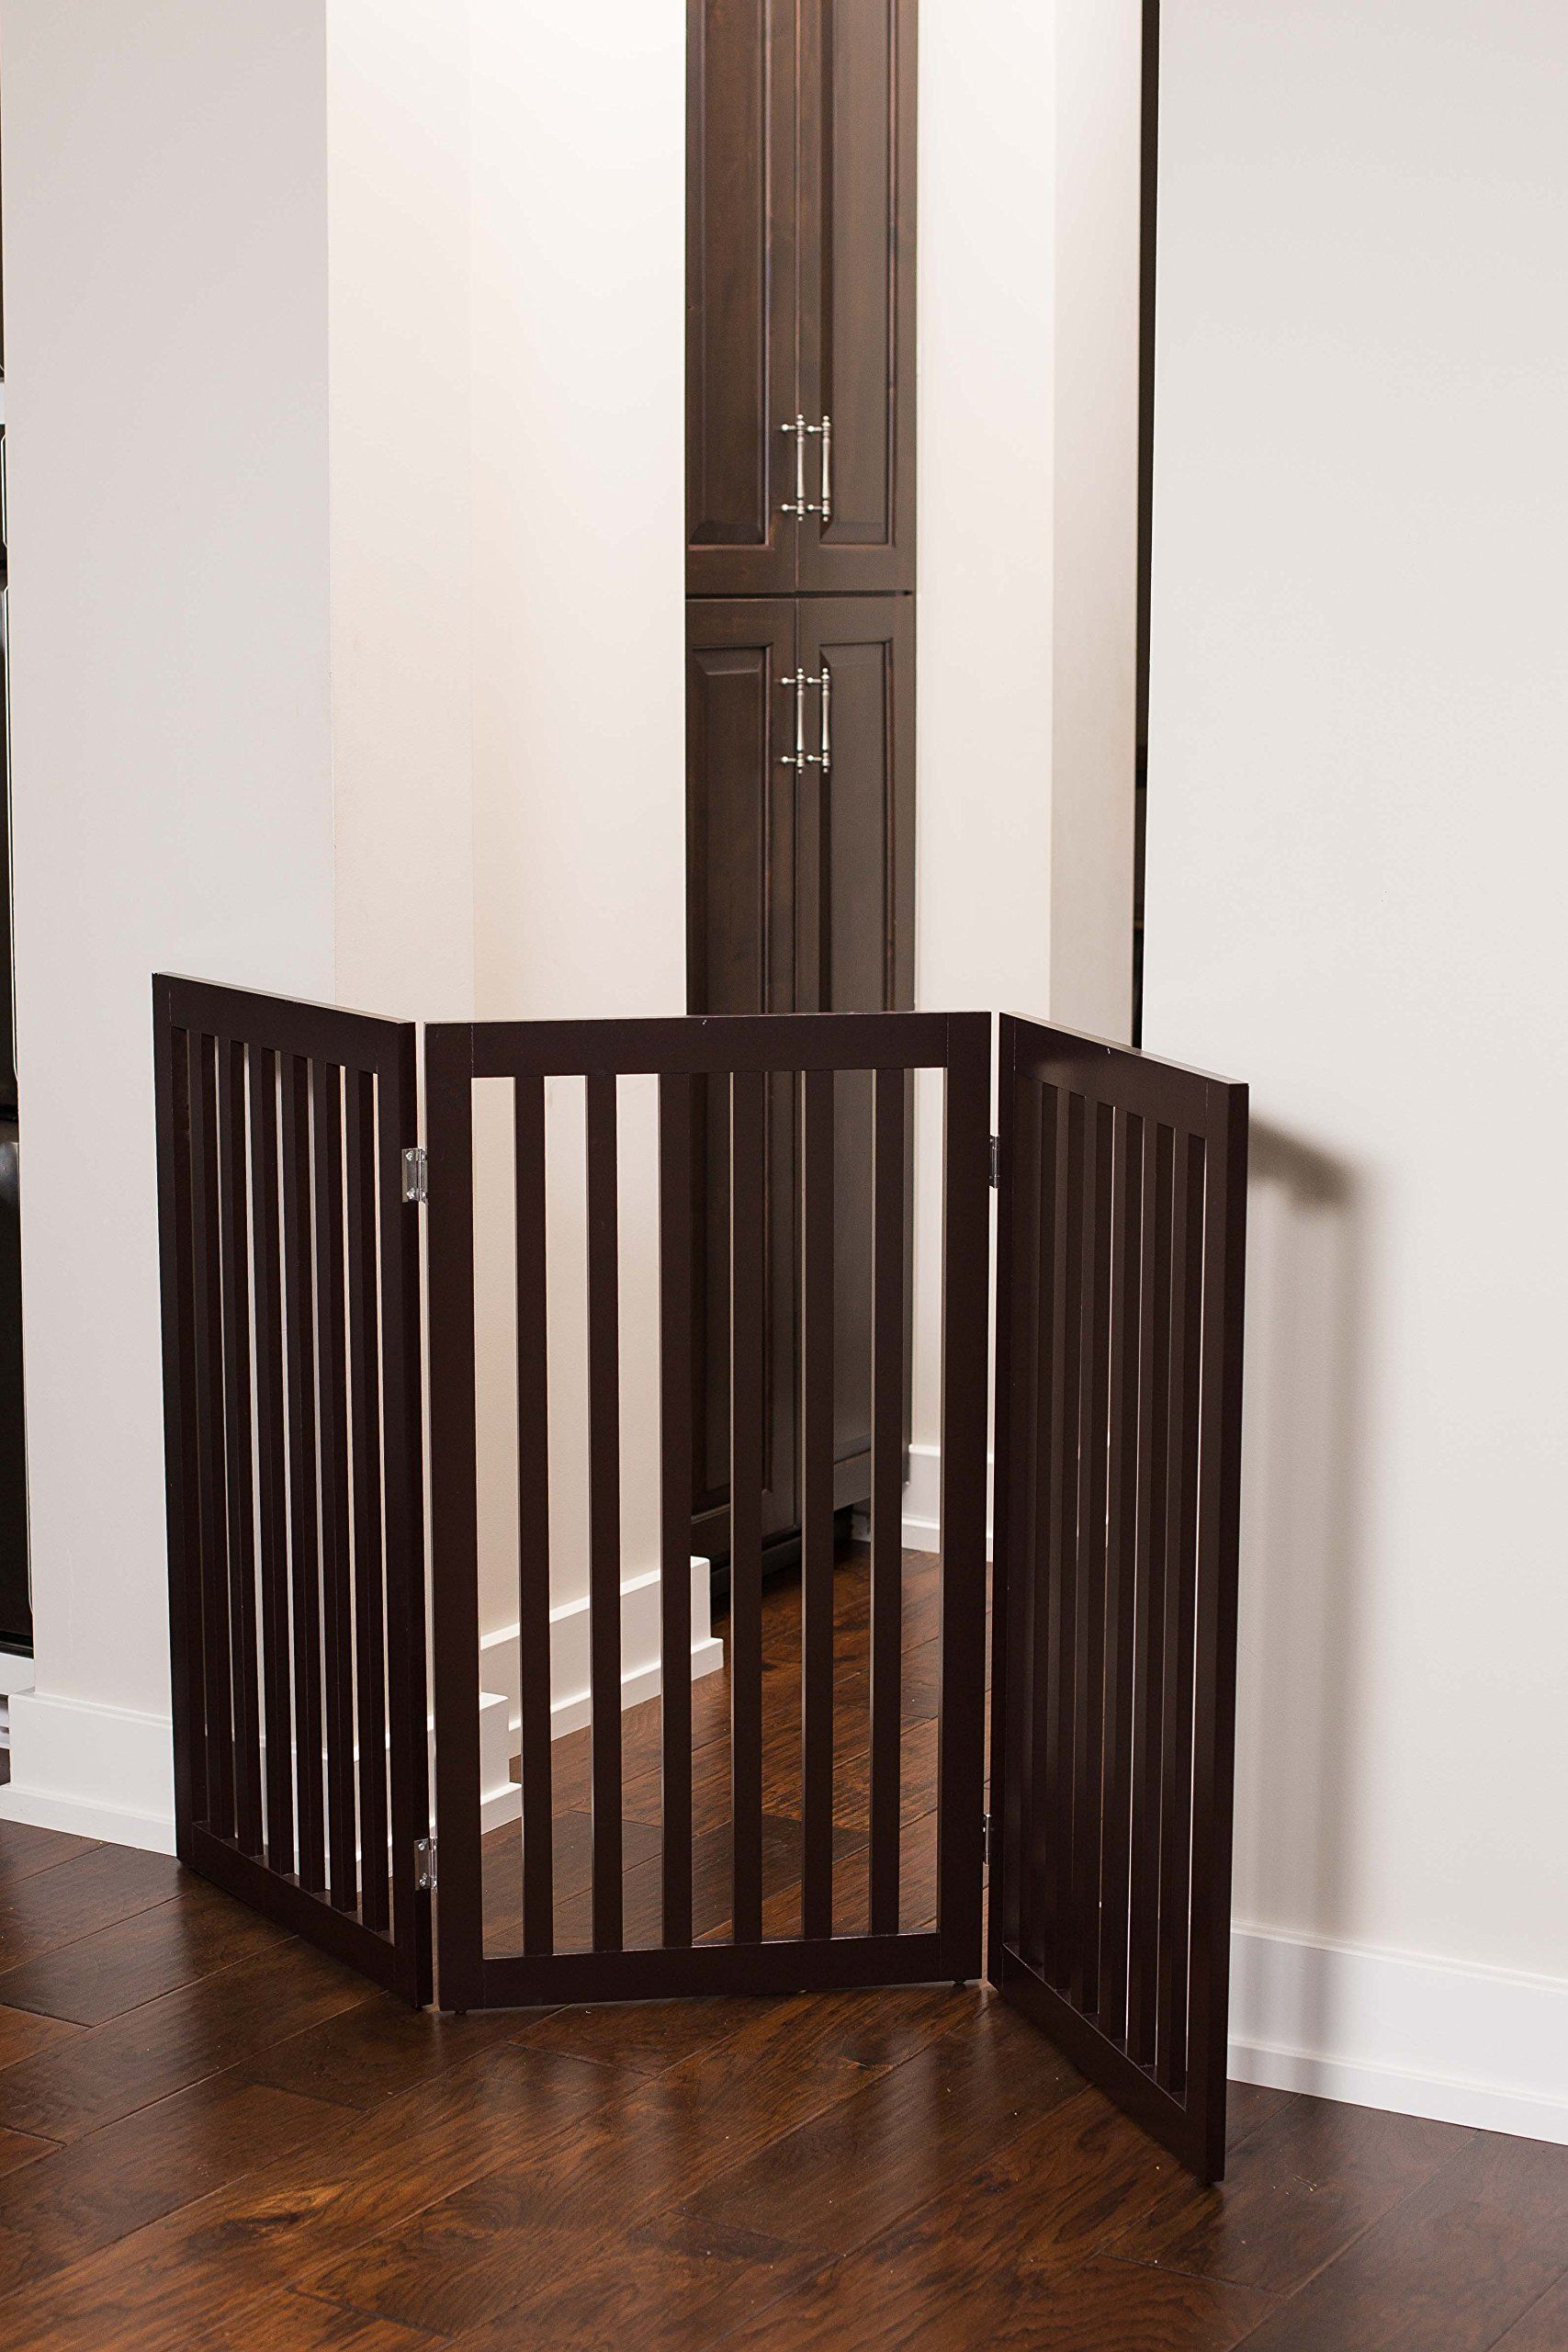 Internets Best Traditional Pet Gate 3 Panel 36 Inch Tall Fence Free